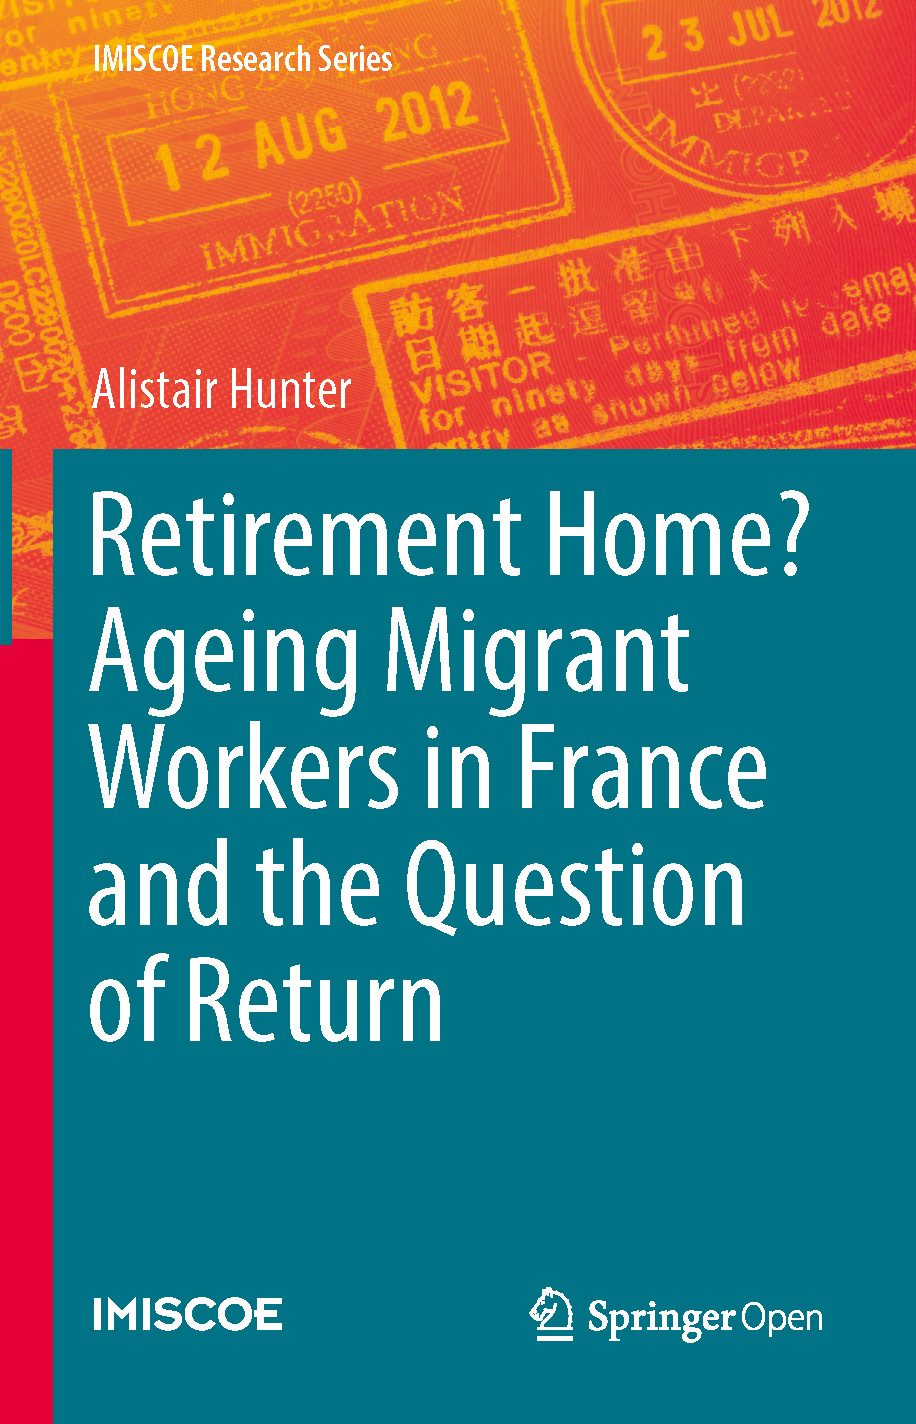 Cover of Retirement Home? Ageing Migrant Workers in France and the Question of Return